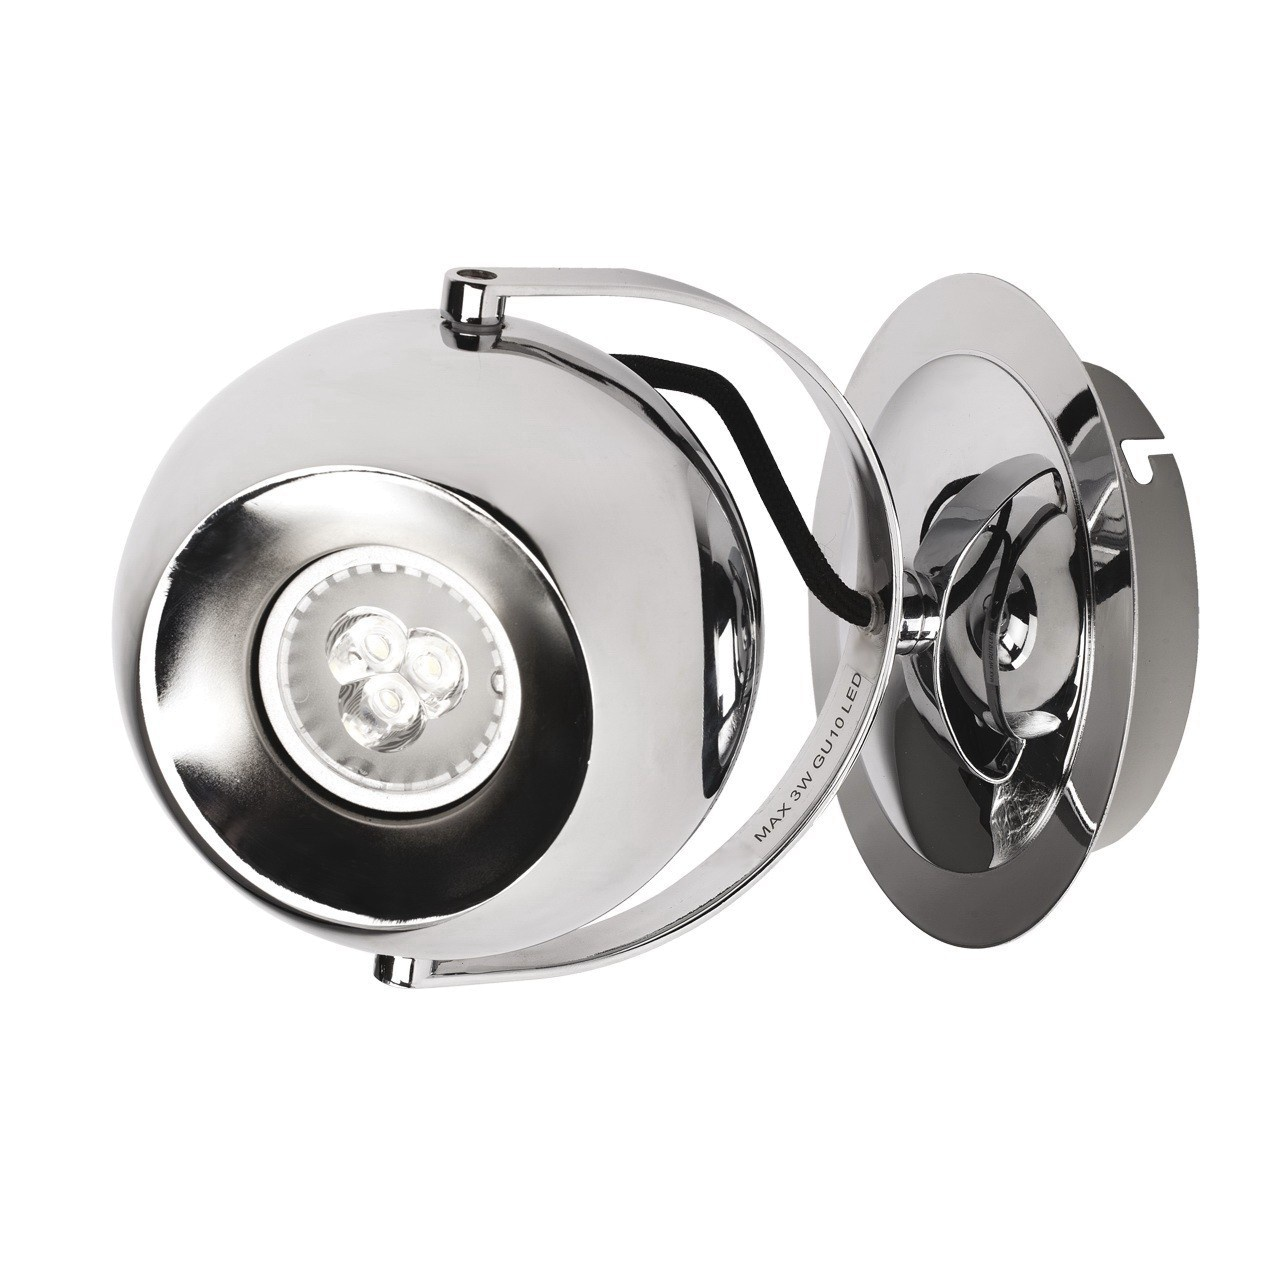 Бра Mw light 492020701 спот mw light котбус 492020701